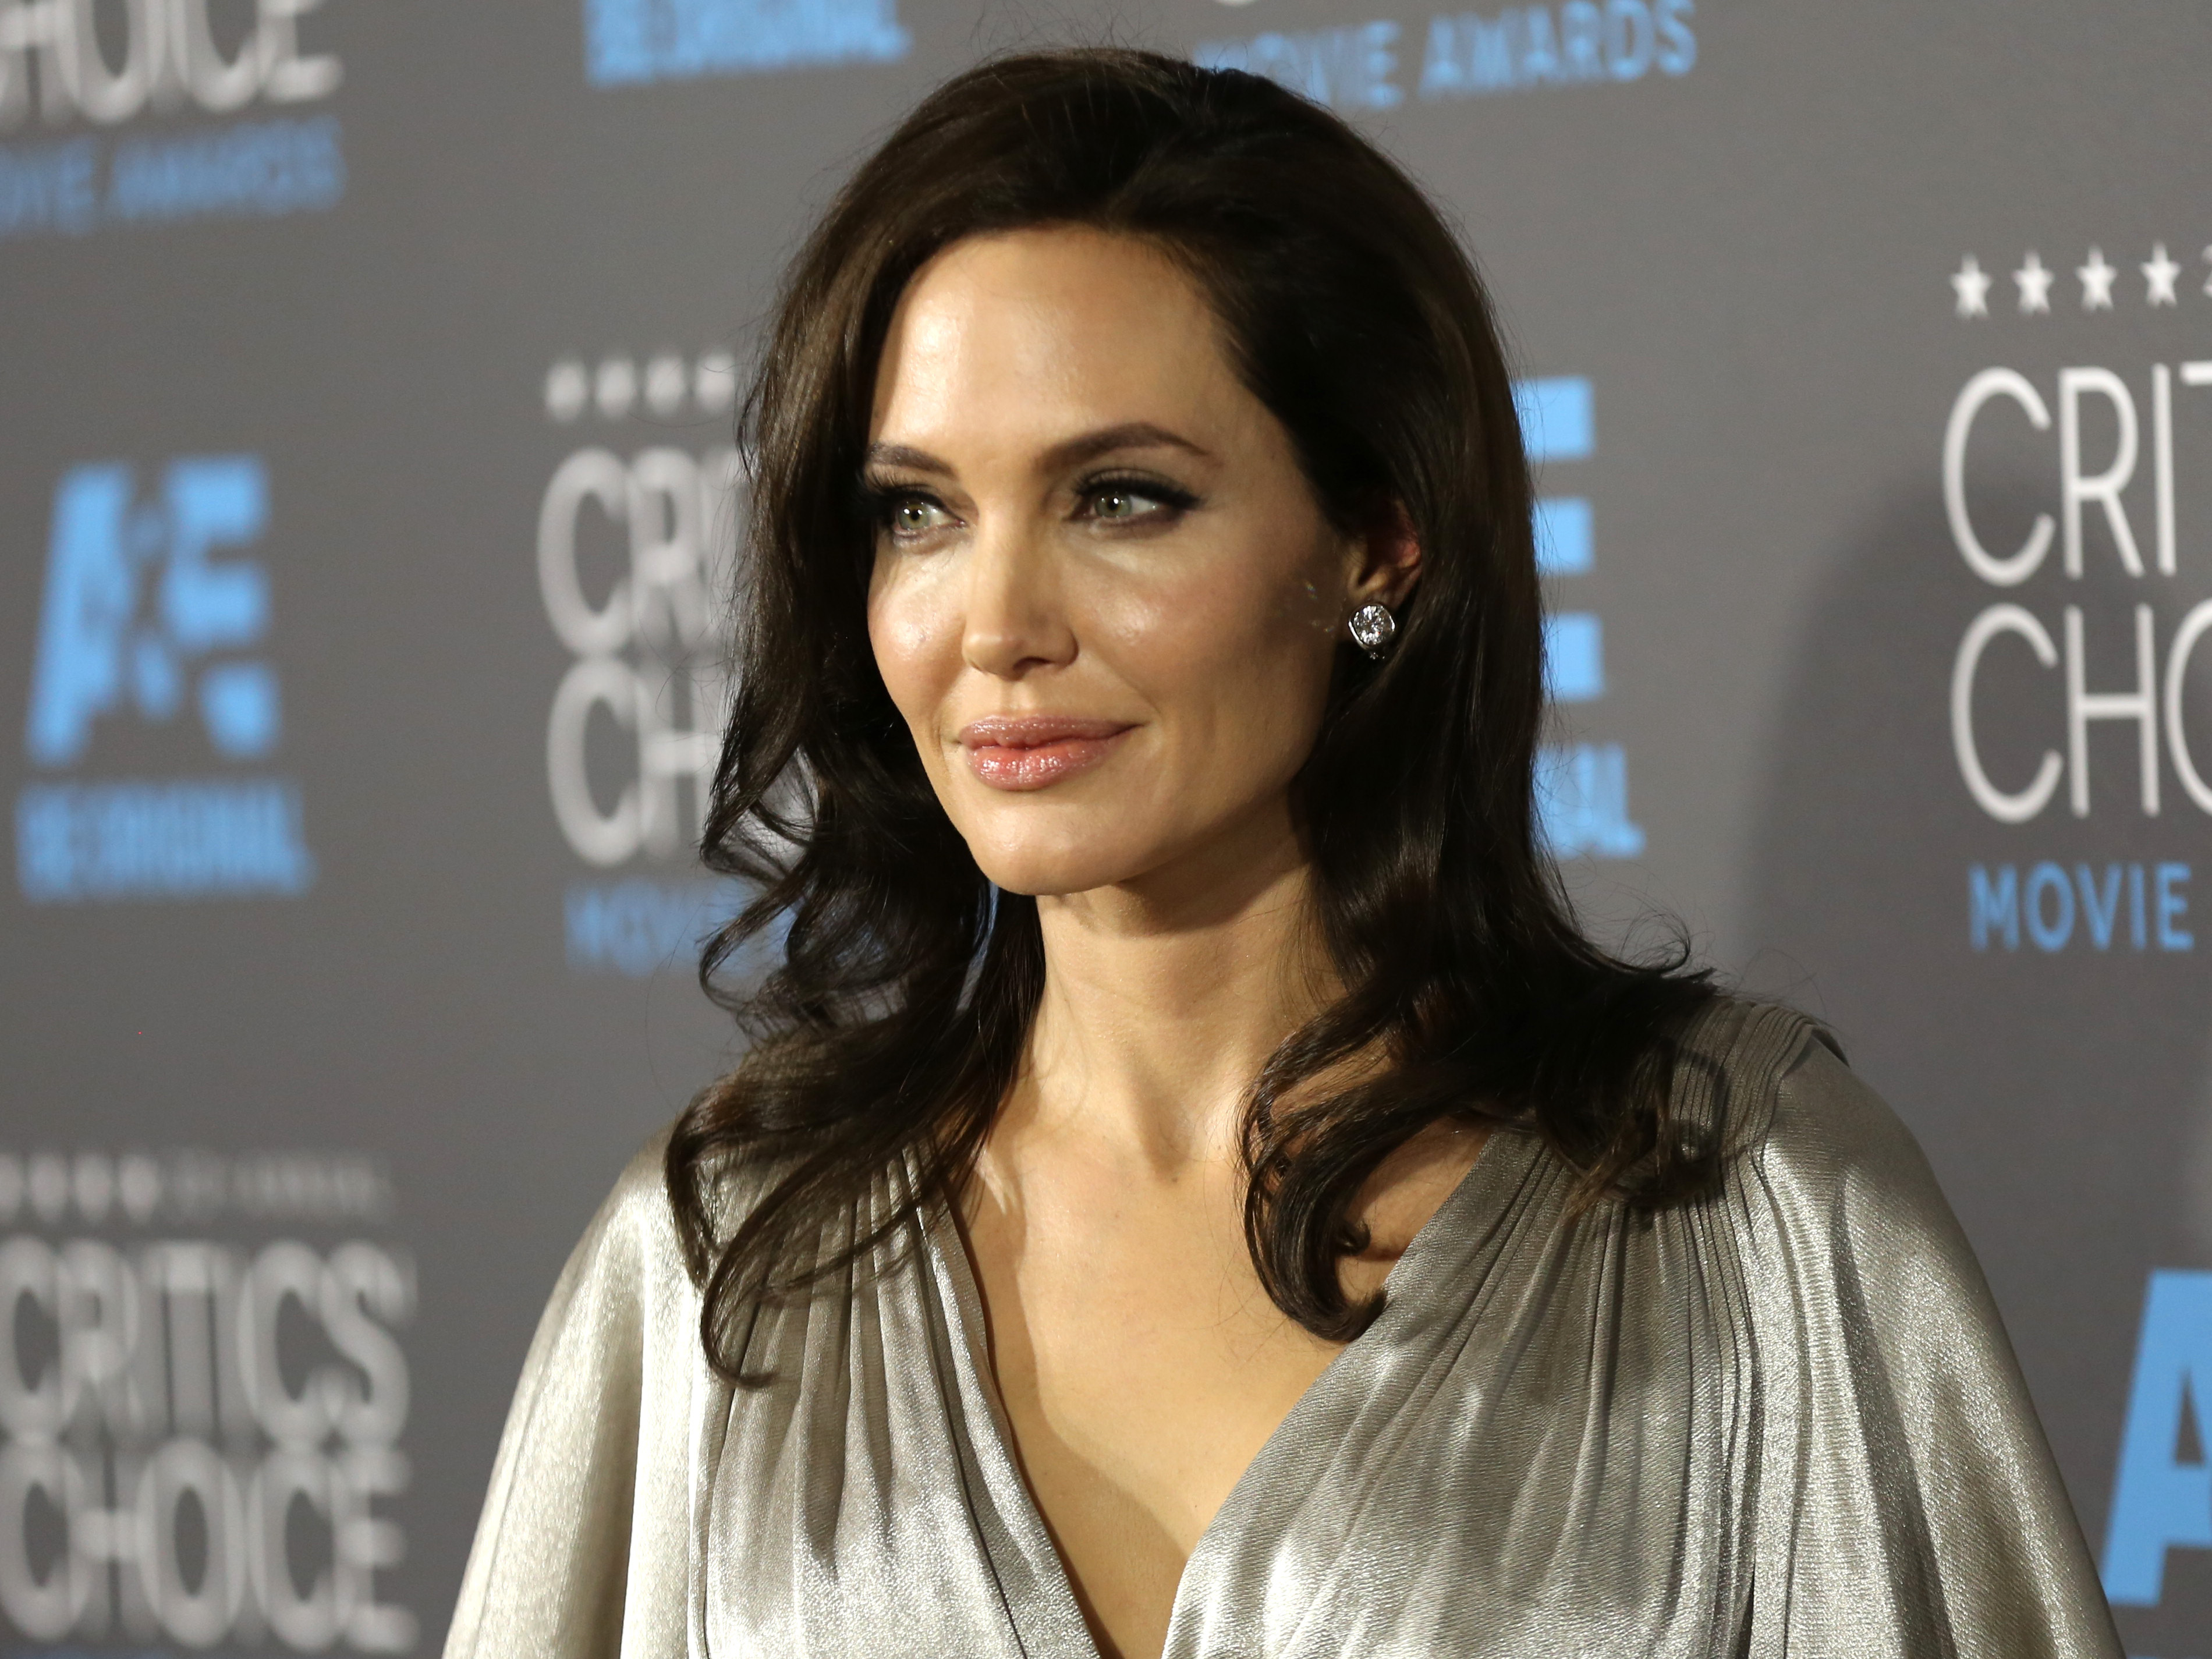 Angelina Jolie Pitt Has Ovaries Removed, Citing Cancer Fears